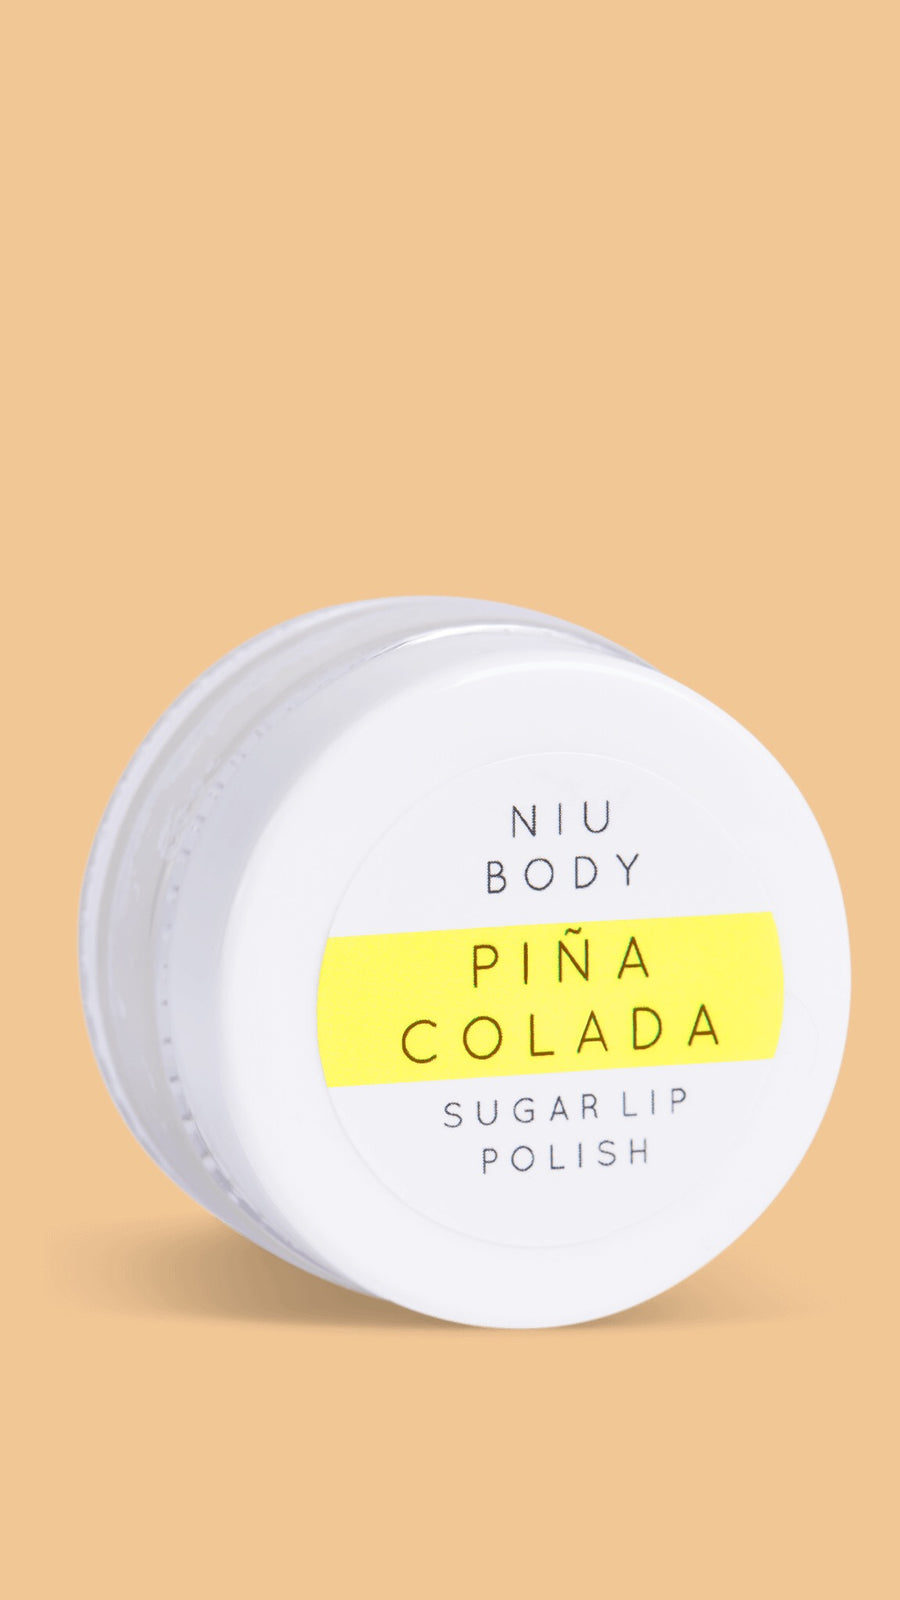 Niu Body Pina Colada Sugar Lip Polish